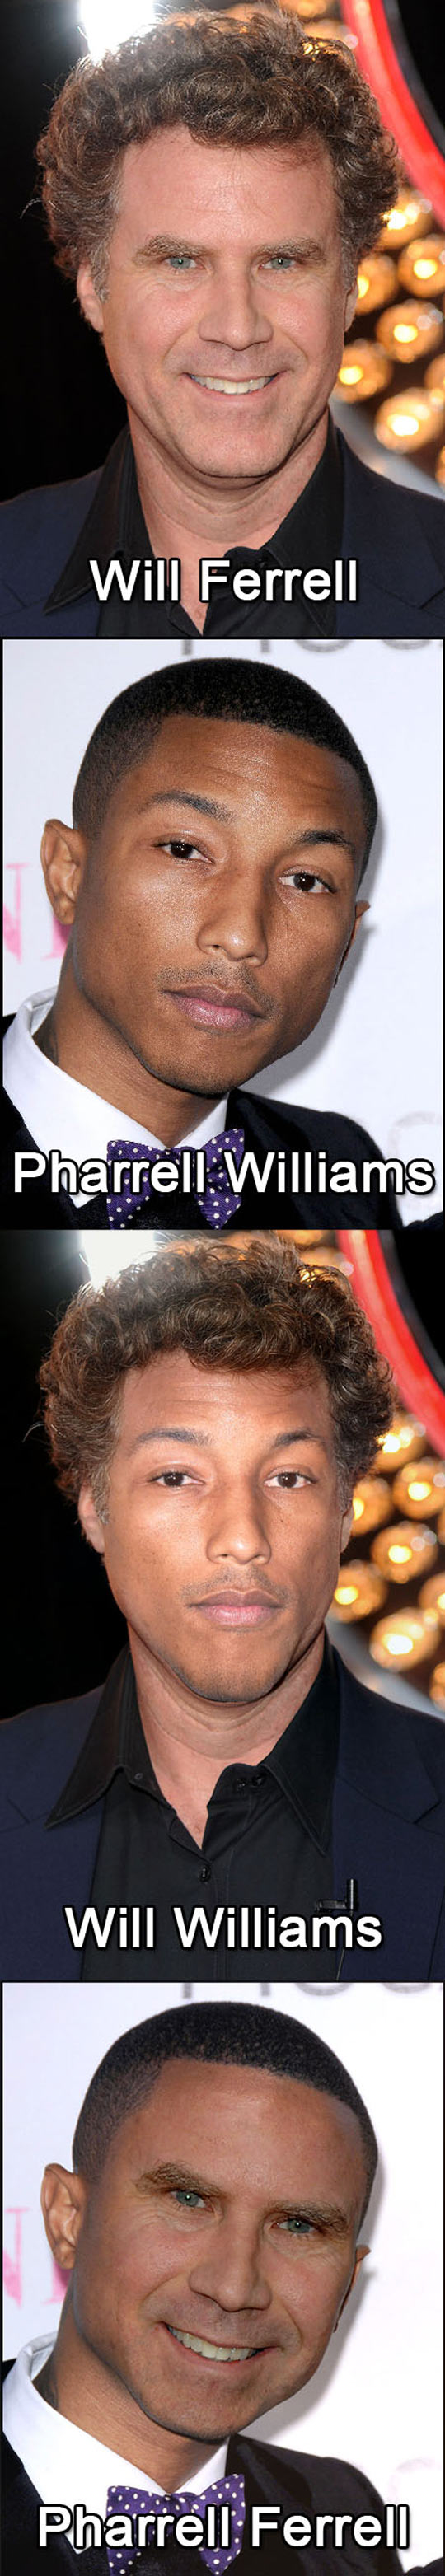 funny-face-swap-Will-Pharrell-Ferrell-Williams